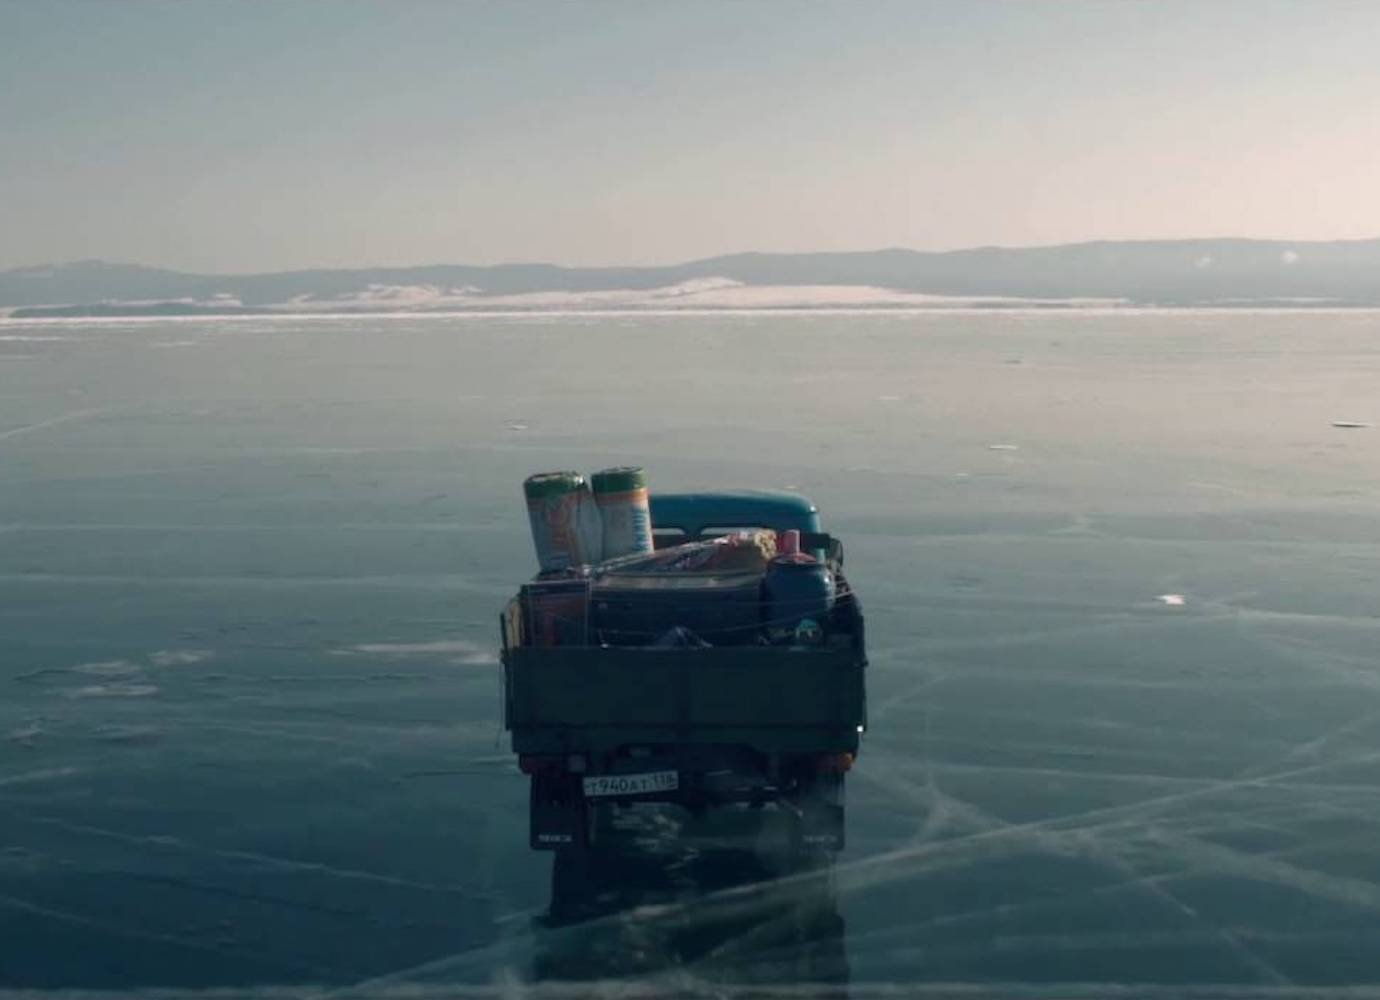 Epic journeys, crime thrillers and Keanu Reeves: Siberia through the eyes of foreign filmmakers